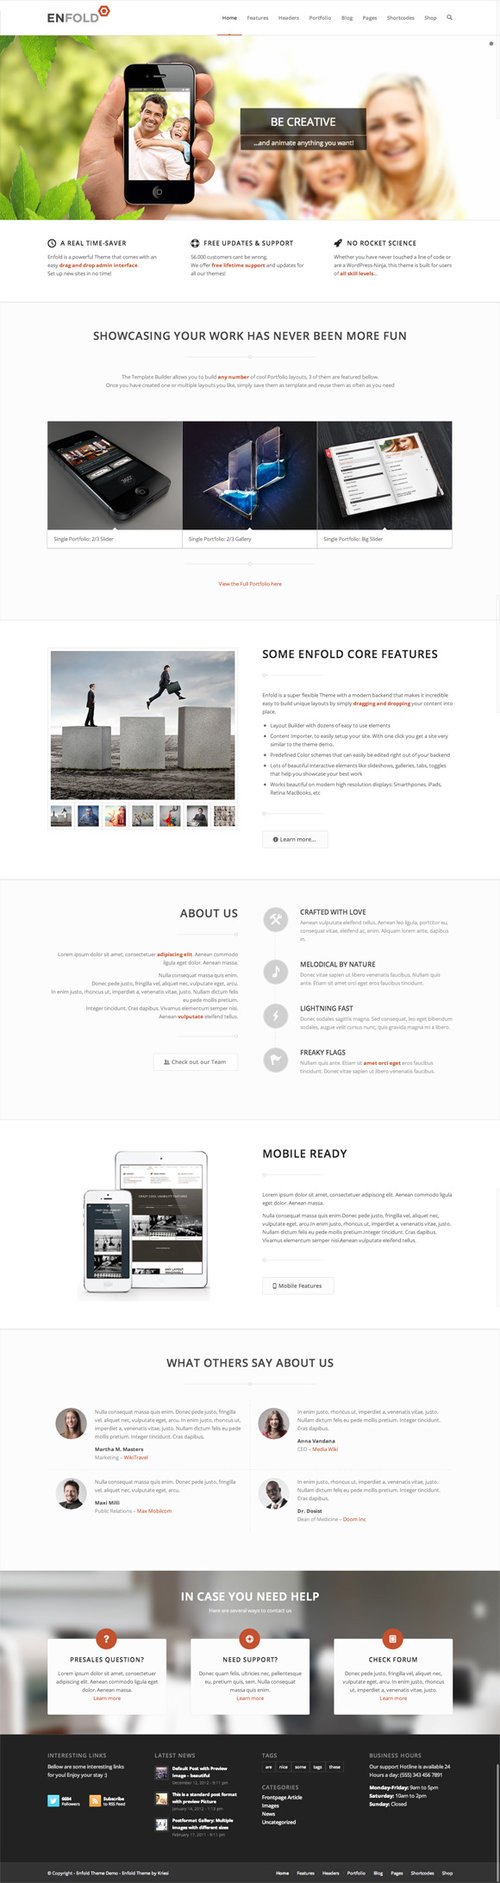 Enfold Review, ThemeForest, Enfold WordPress Theme